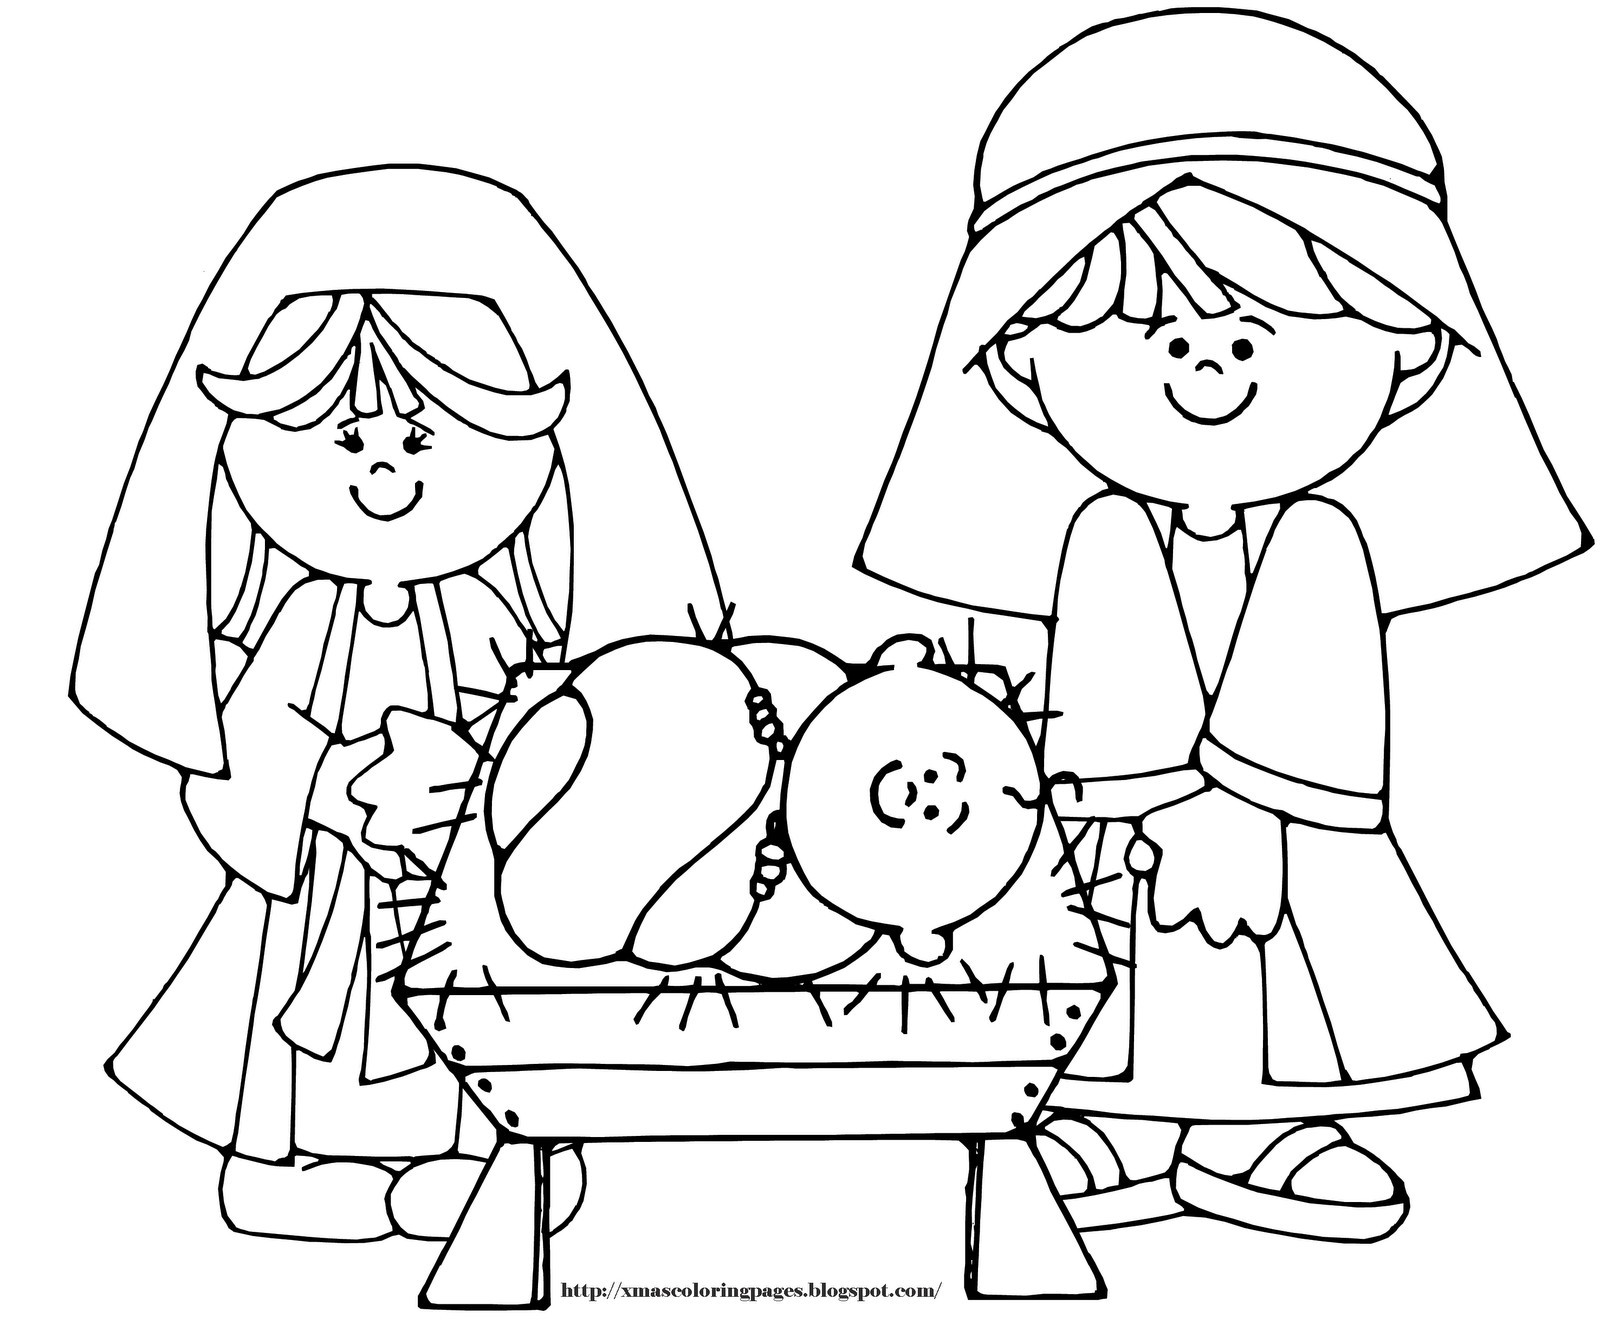 Christmas Coloring Baby Jesus With Tremendous Pages 6 On Inside Gamz Me